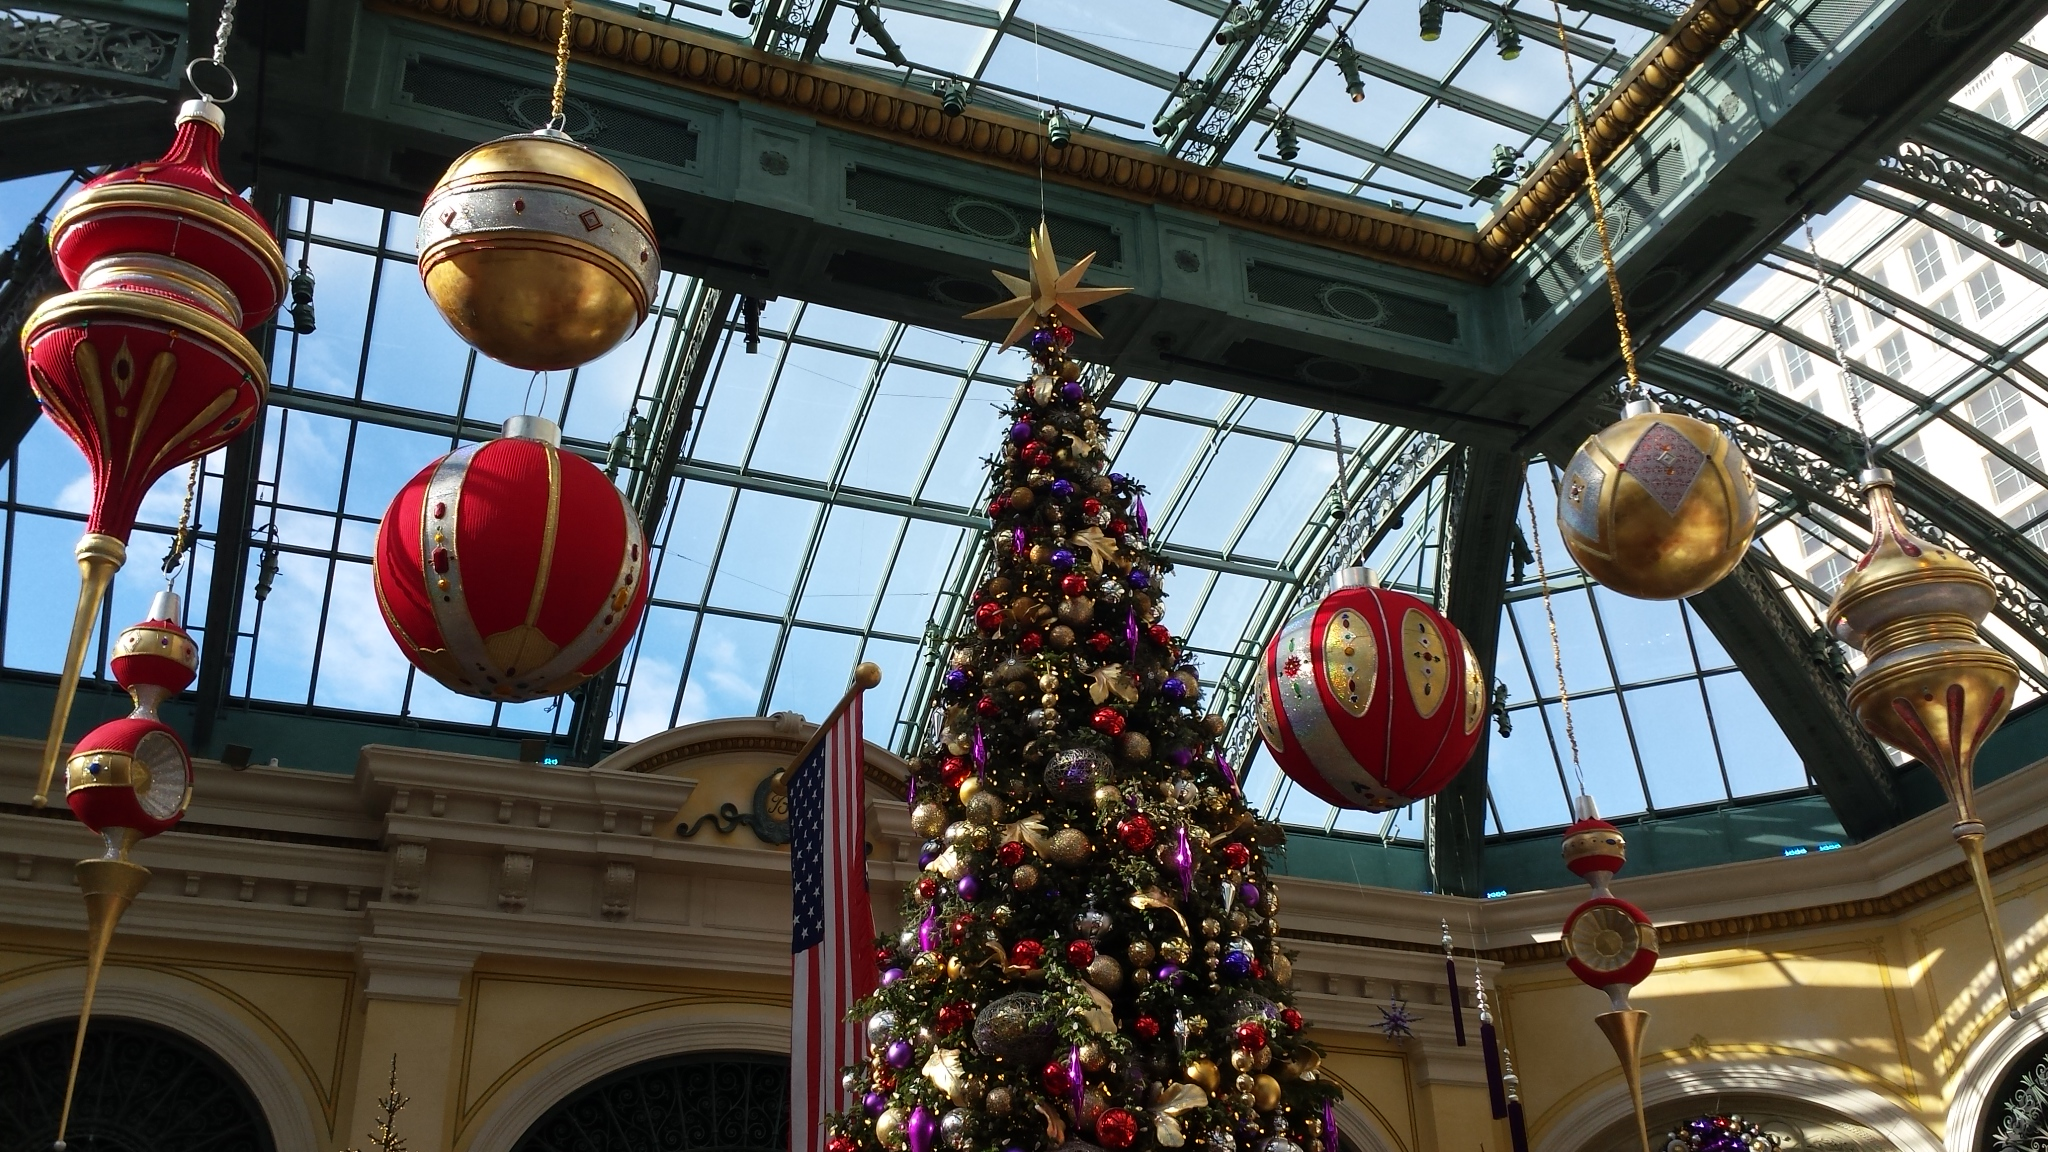 The Christmas display at the Bellagio Hotel in Las Vegas.